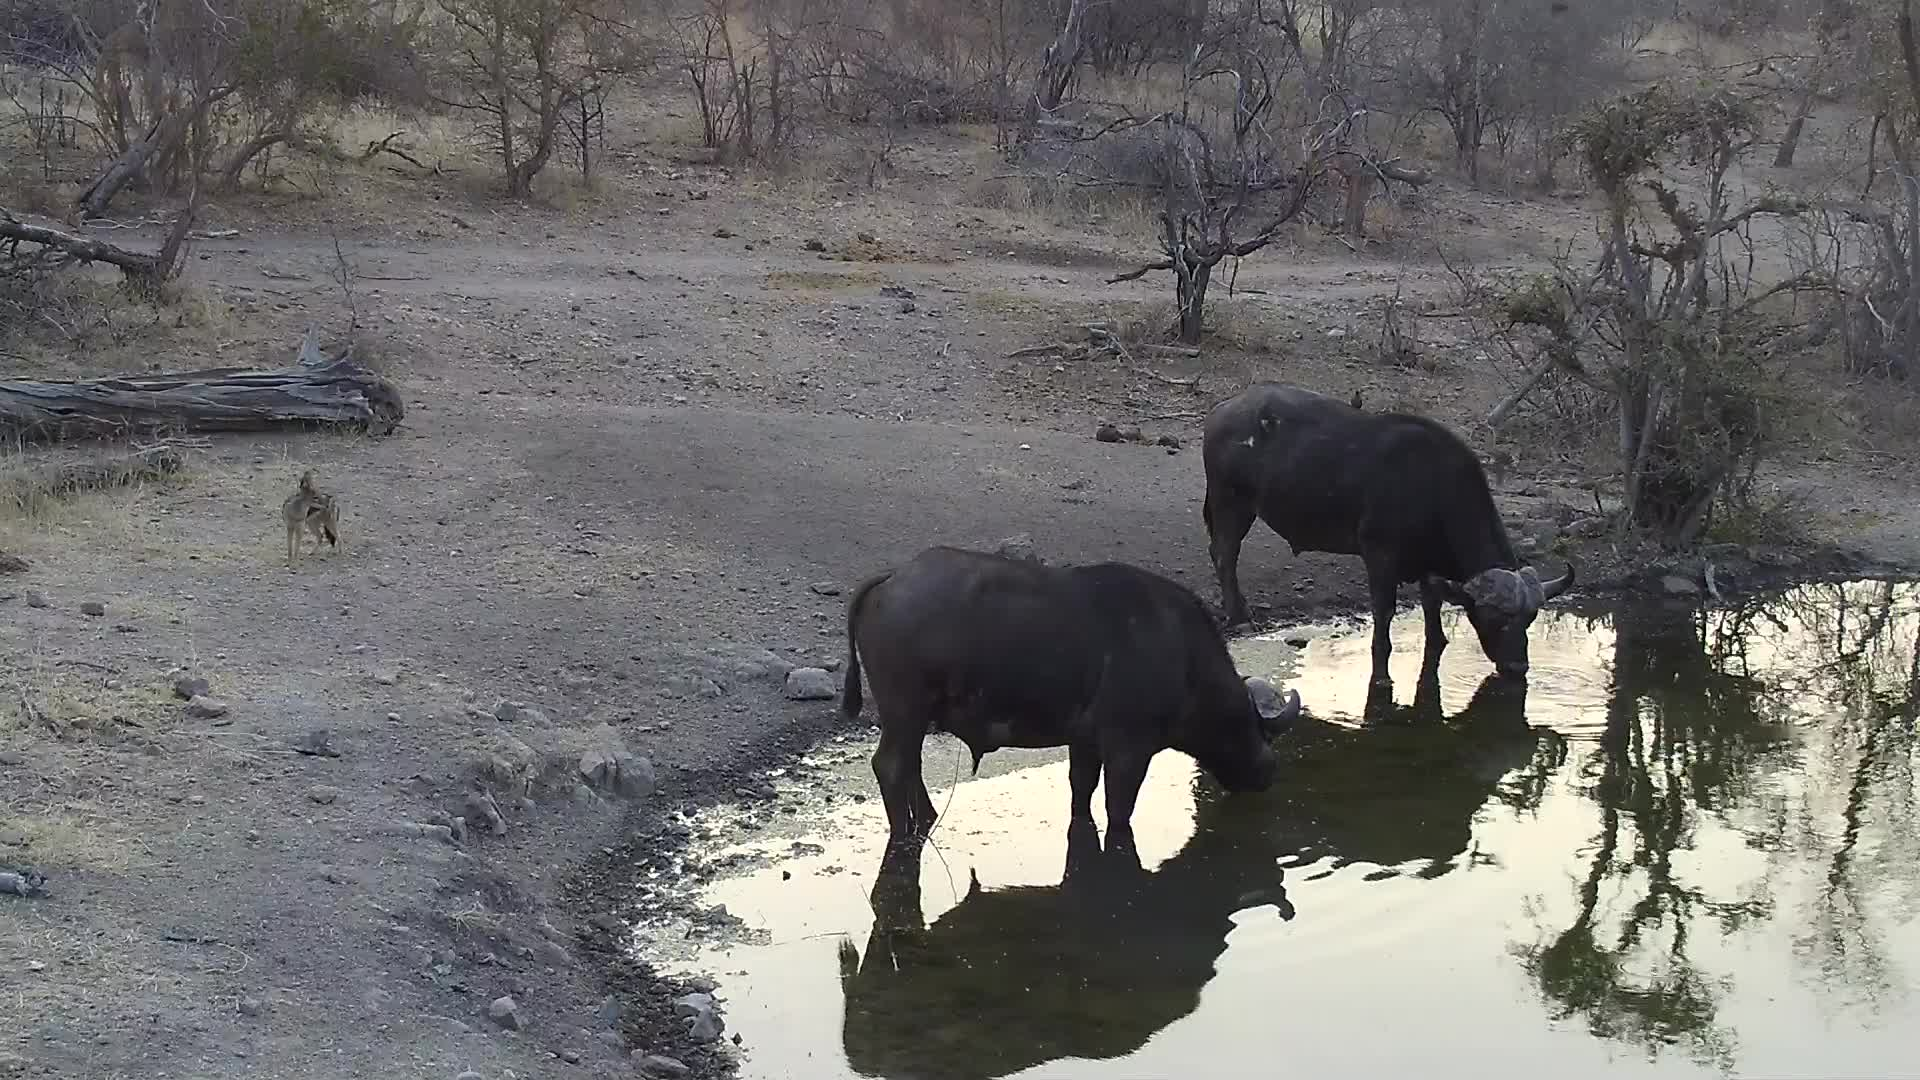 VIDEO:  Cape Buffalo having a drink with Black-backed Jackal observing